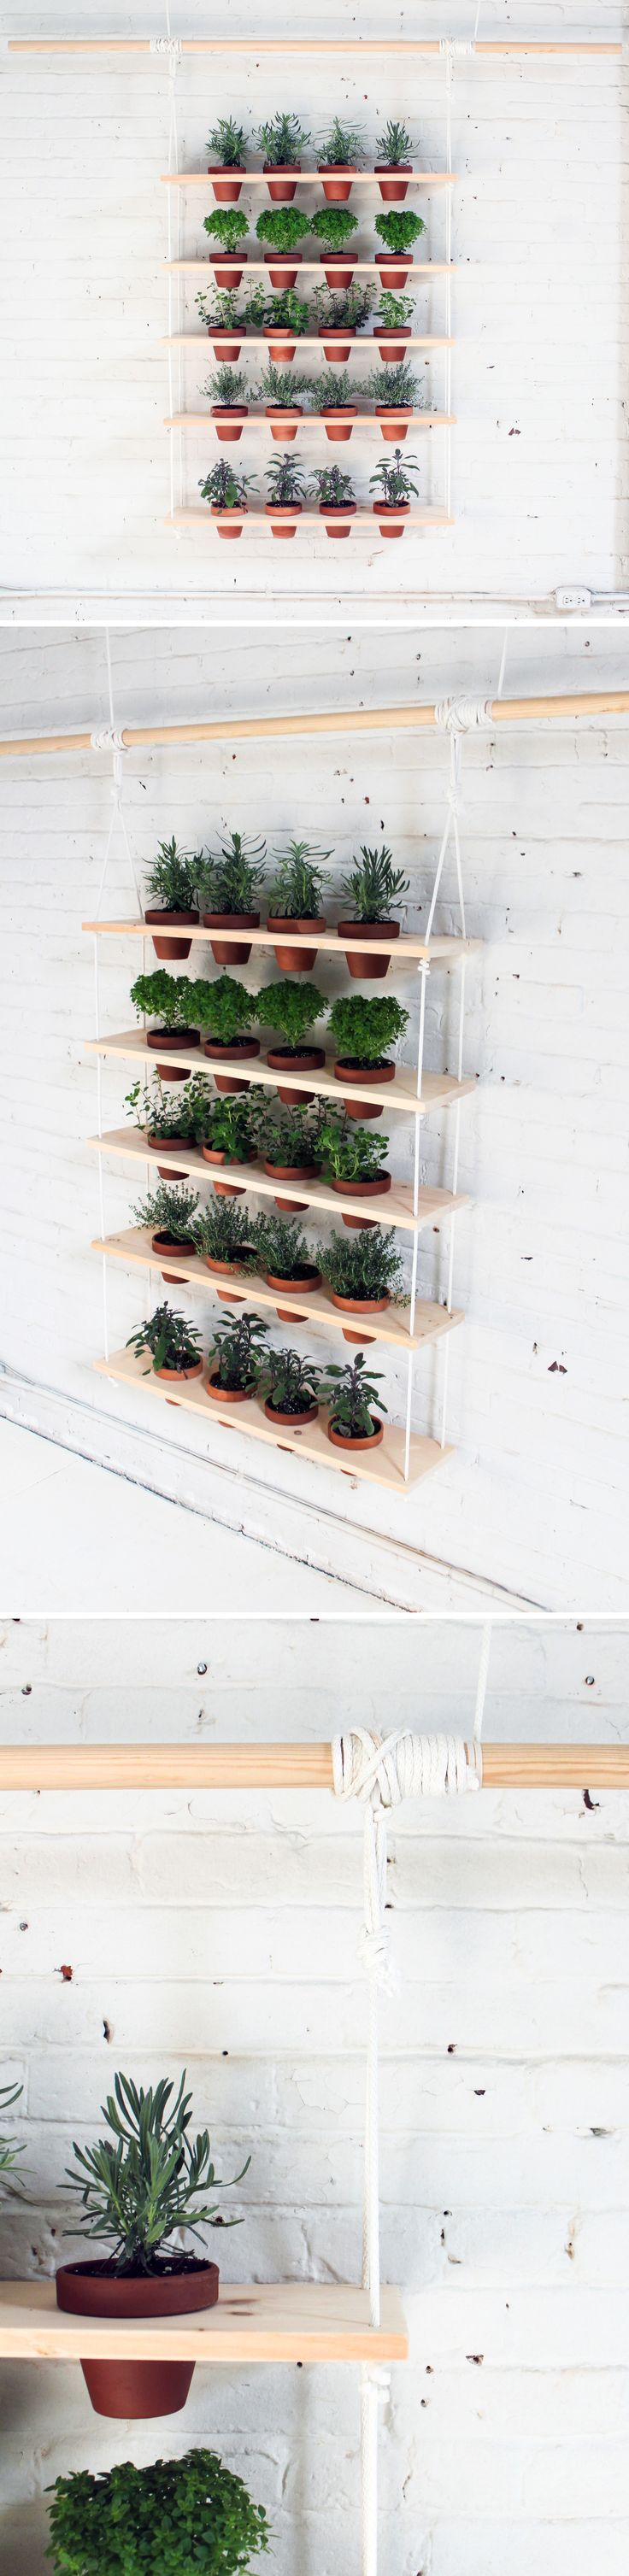 This DIY Vertical Garden Is An Easy To Make Project That Can Turn A